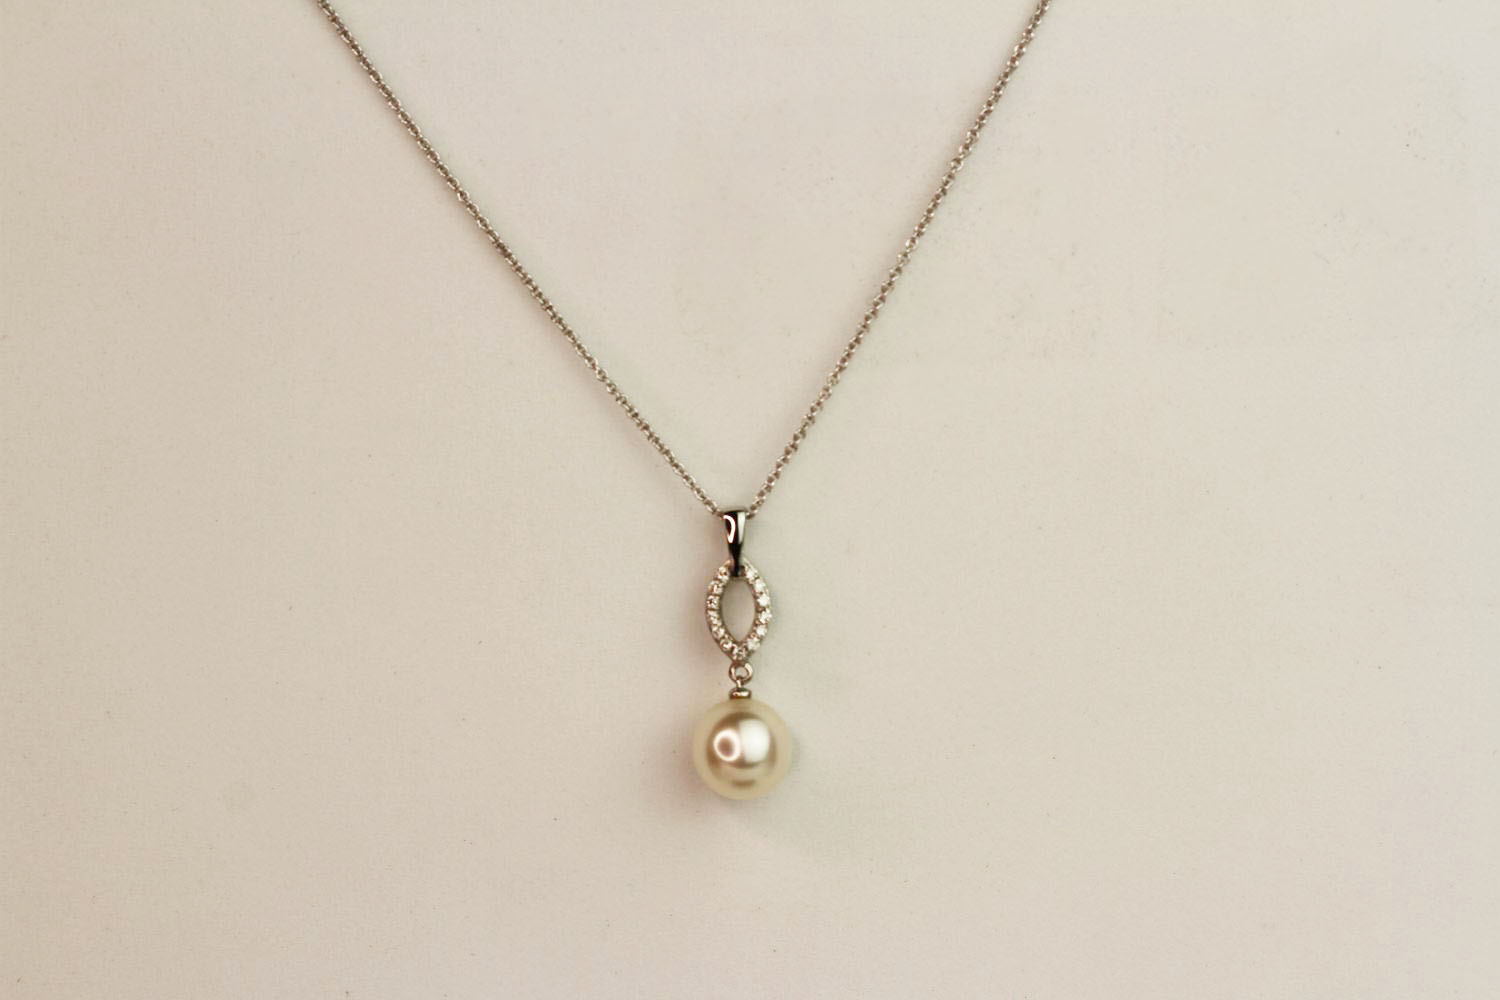 9ct white gold pearl and diamond drop pendant and chain, boxed. Diamonds 0.08ct